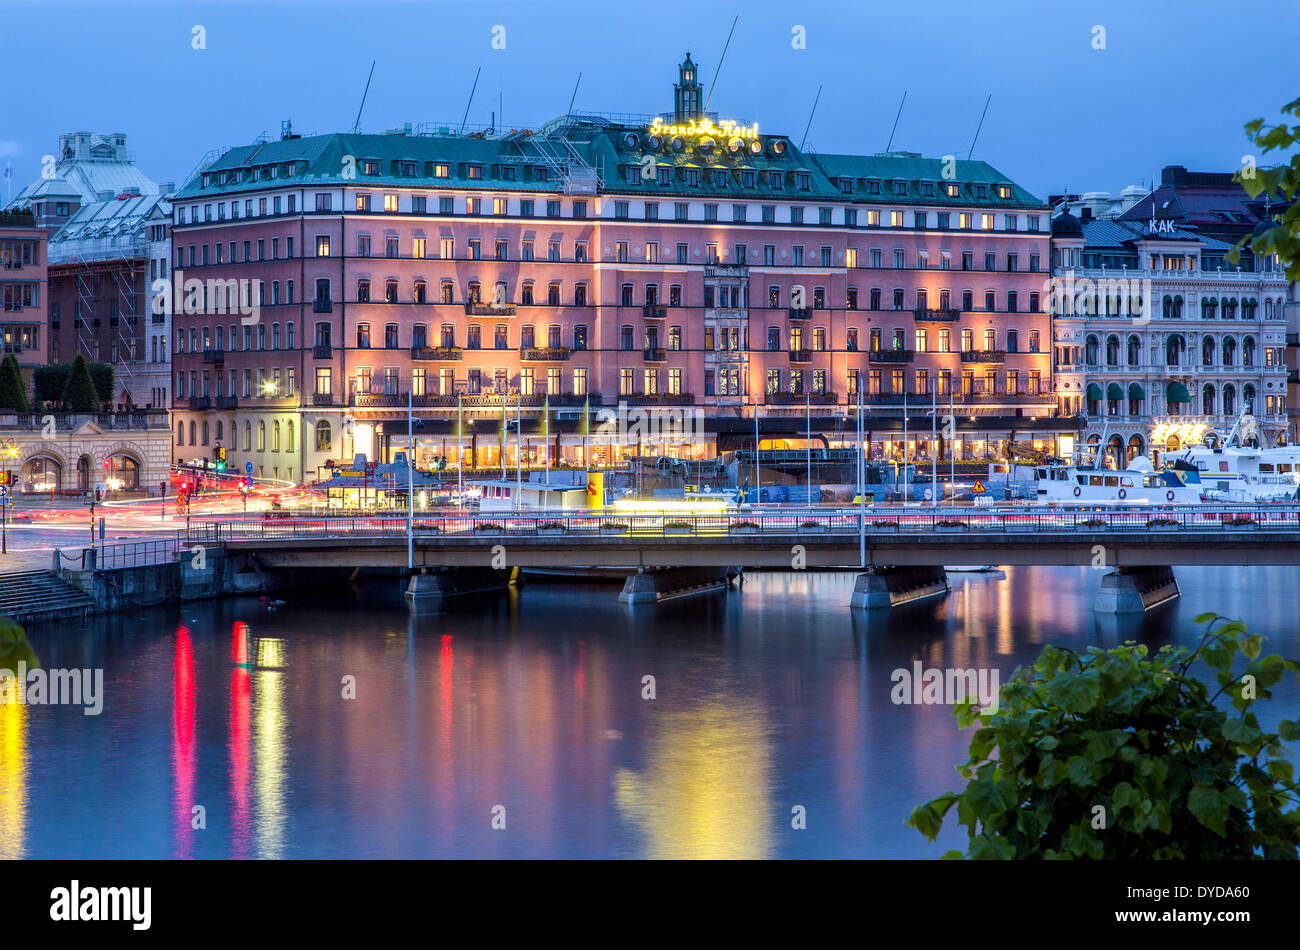 grand hotel s dra blasieholmshamnen stockholm stockholms l n or stock photo 68520200 alamy. Black Bedroom Furniture Sets. Home Design Ideas